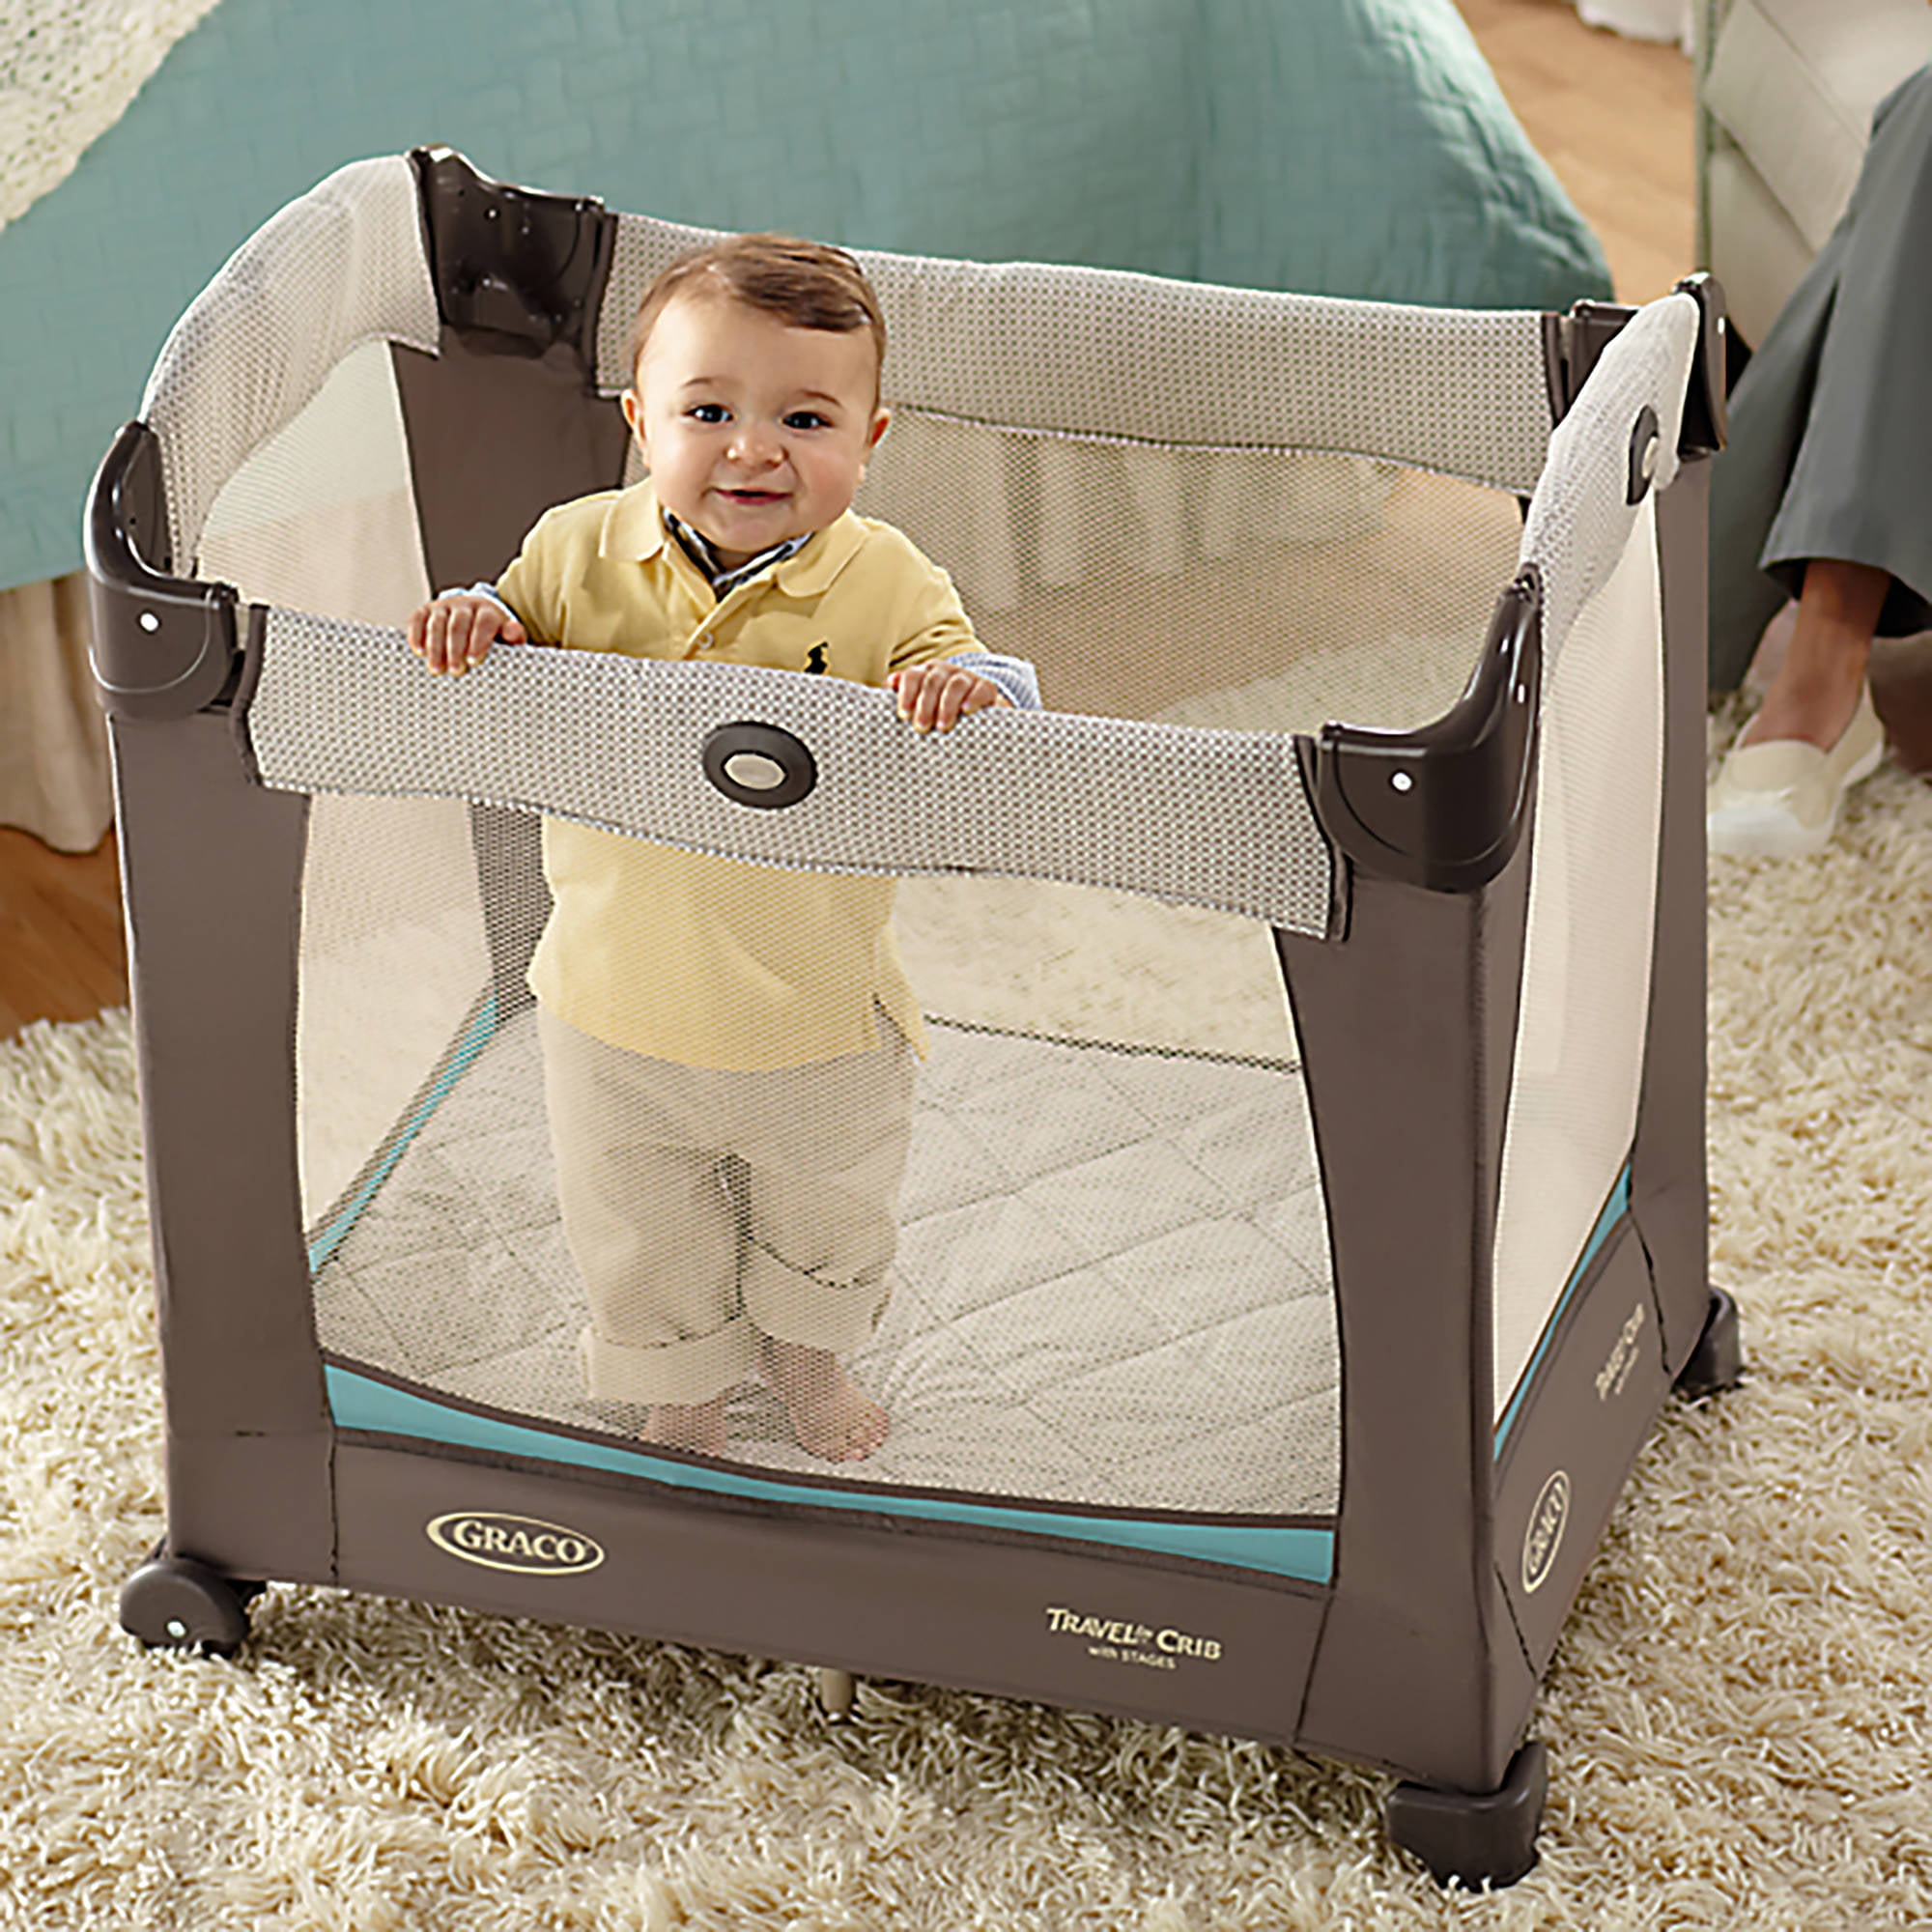 Gocrib adventure crib for sale - Gocrib Adventure Crib For Sale 13